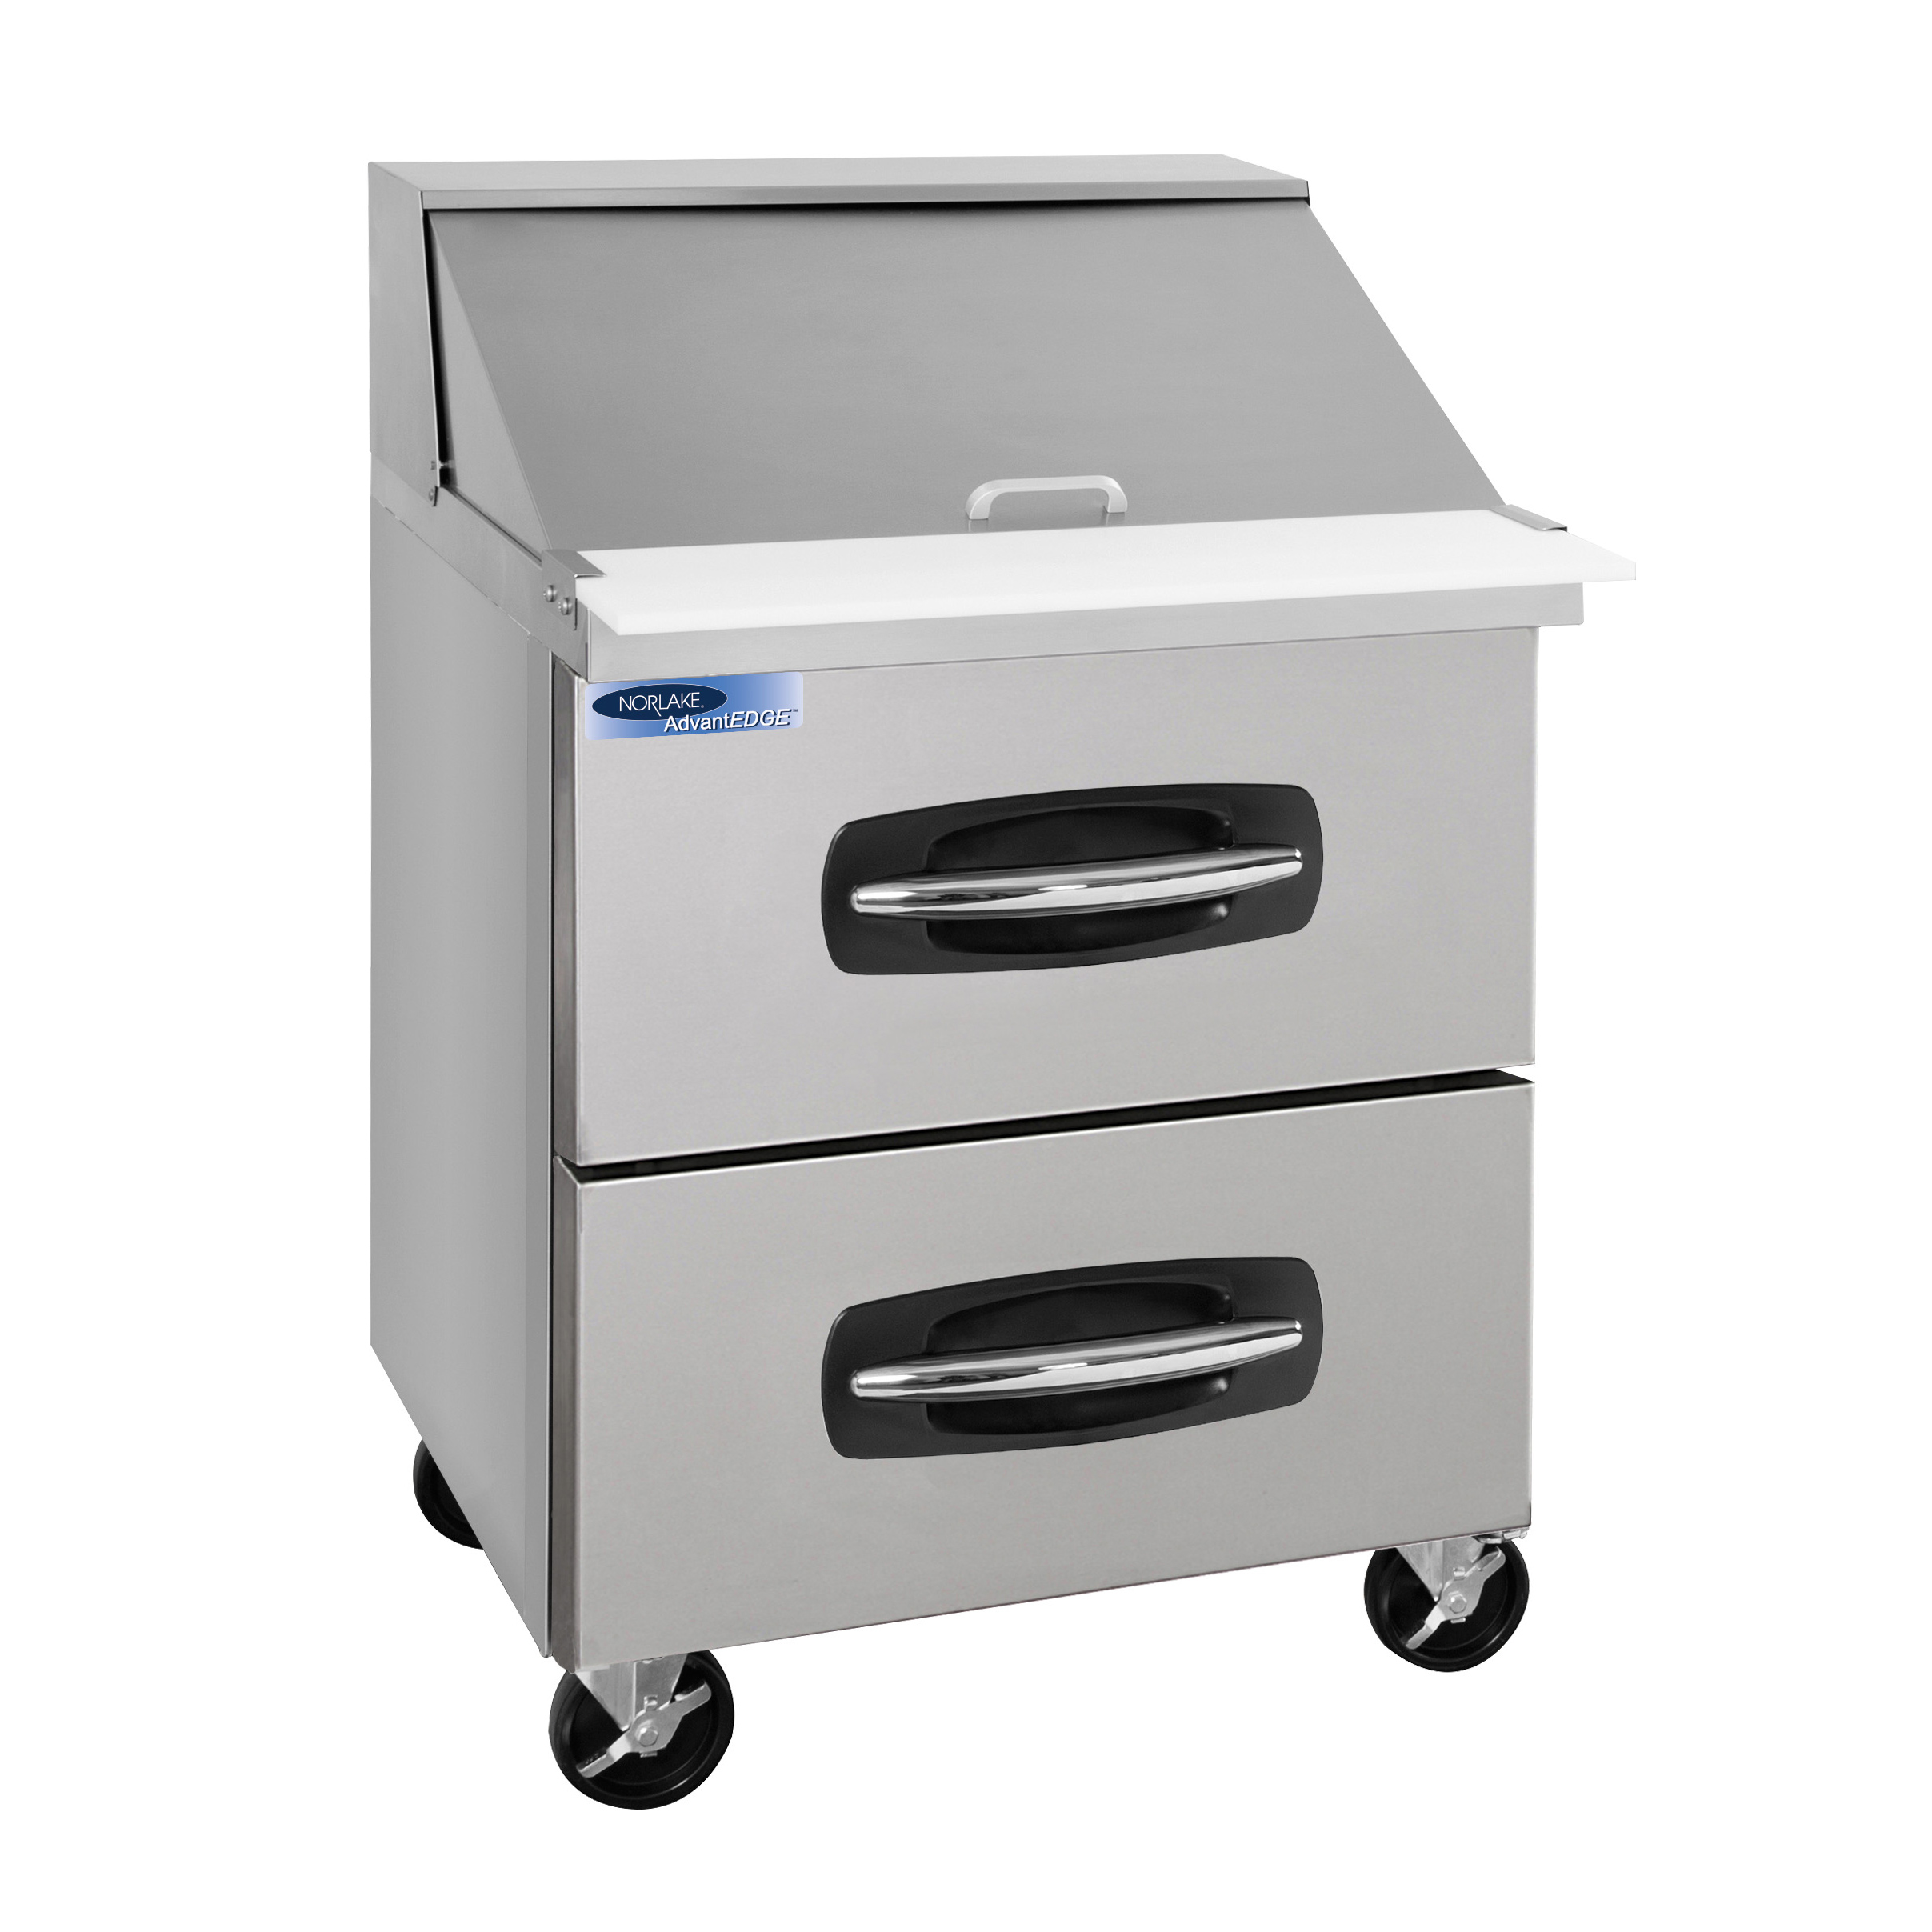 Nor-Lake NLSMP27-12A-001B refrigerated counter, mega top sandwich / salad unit